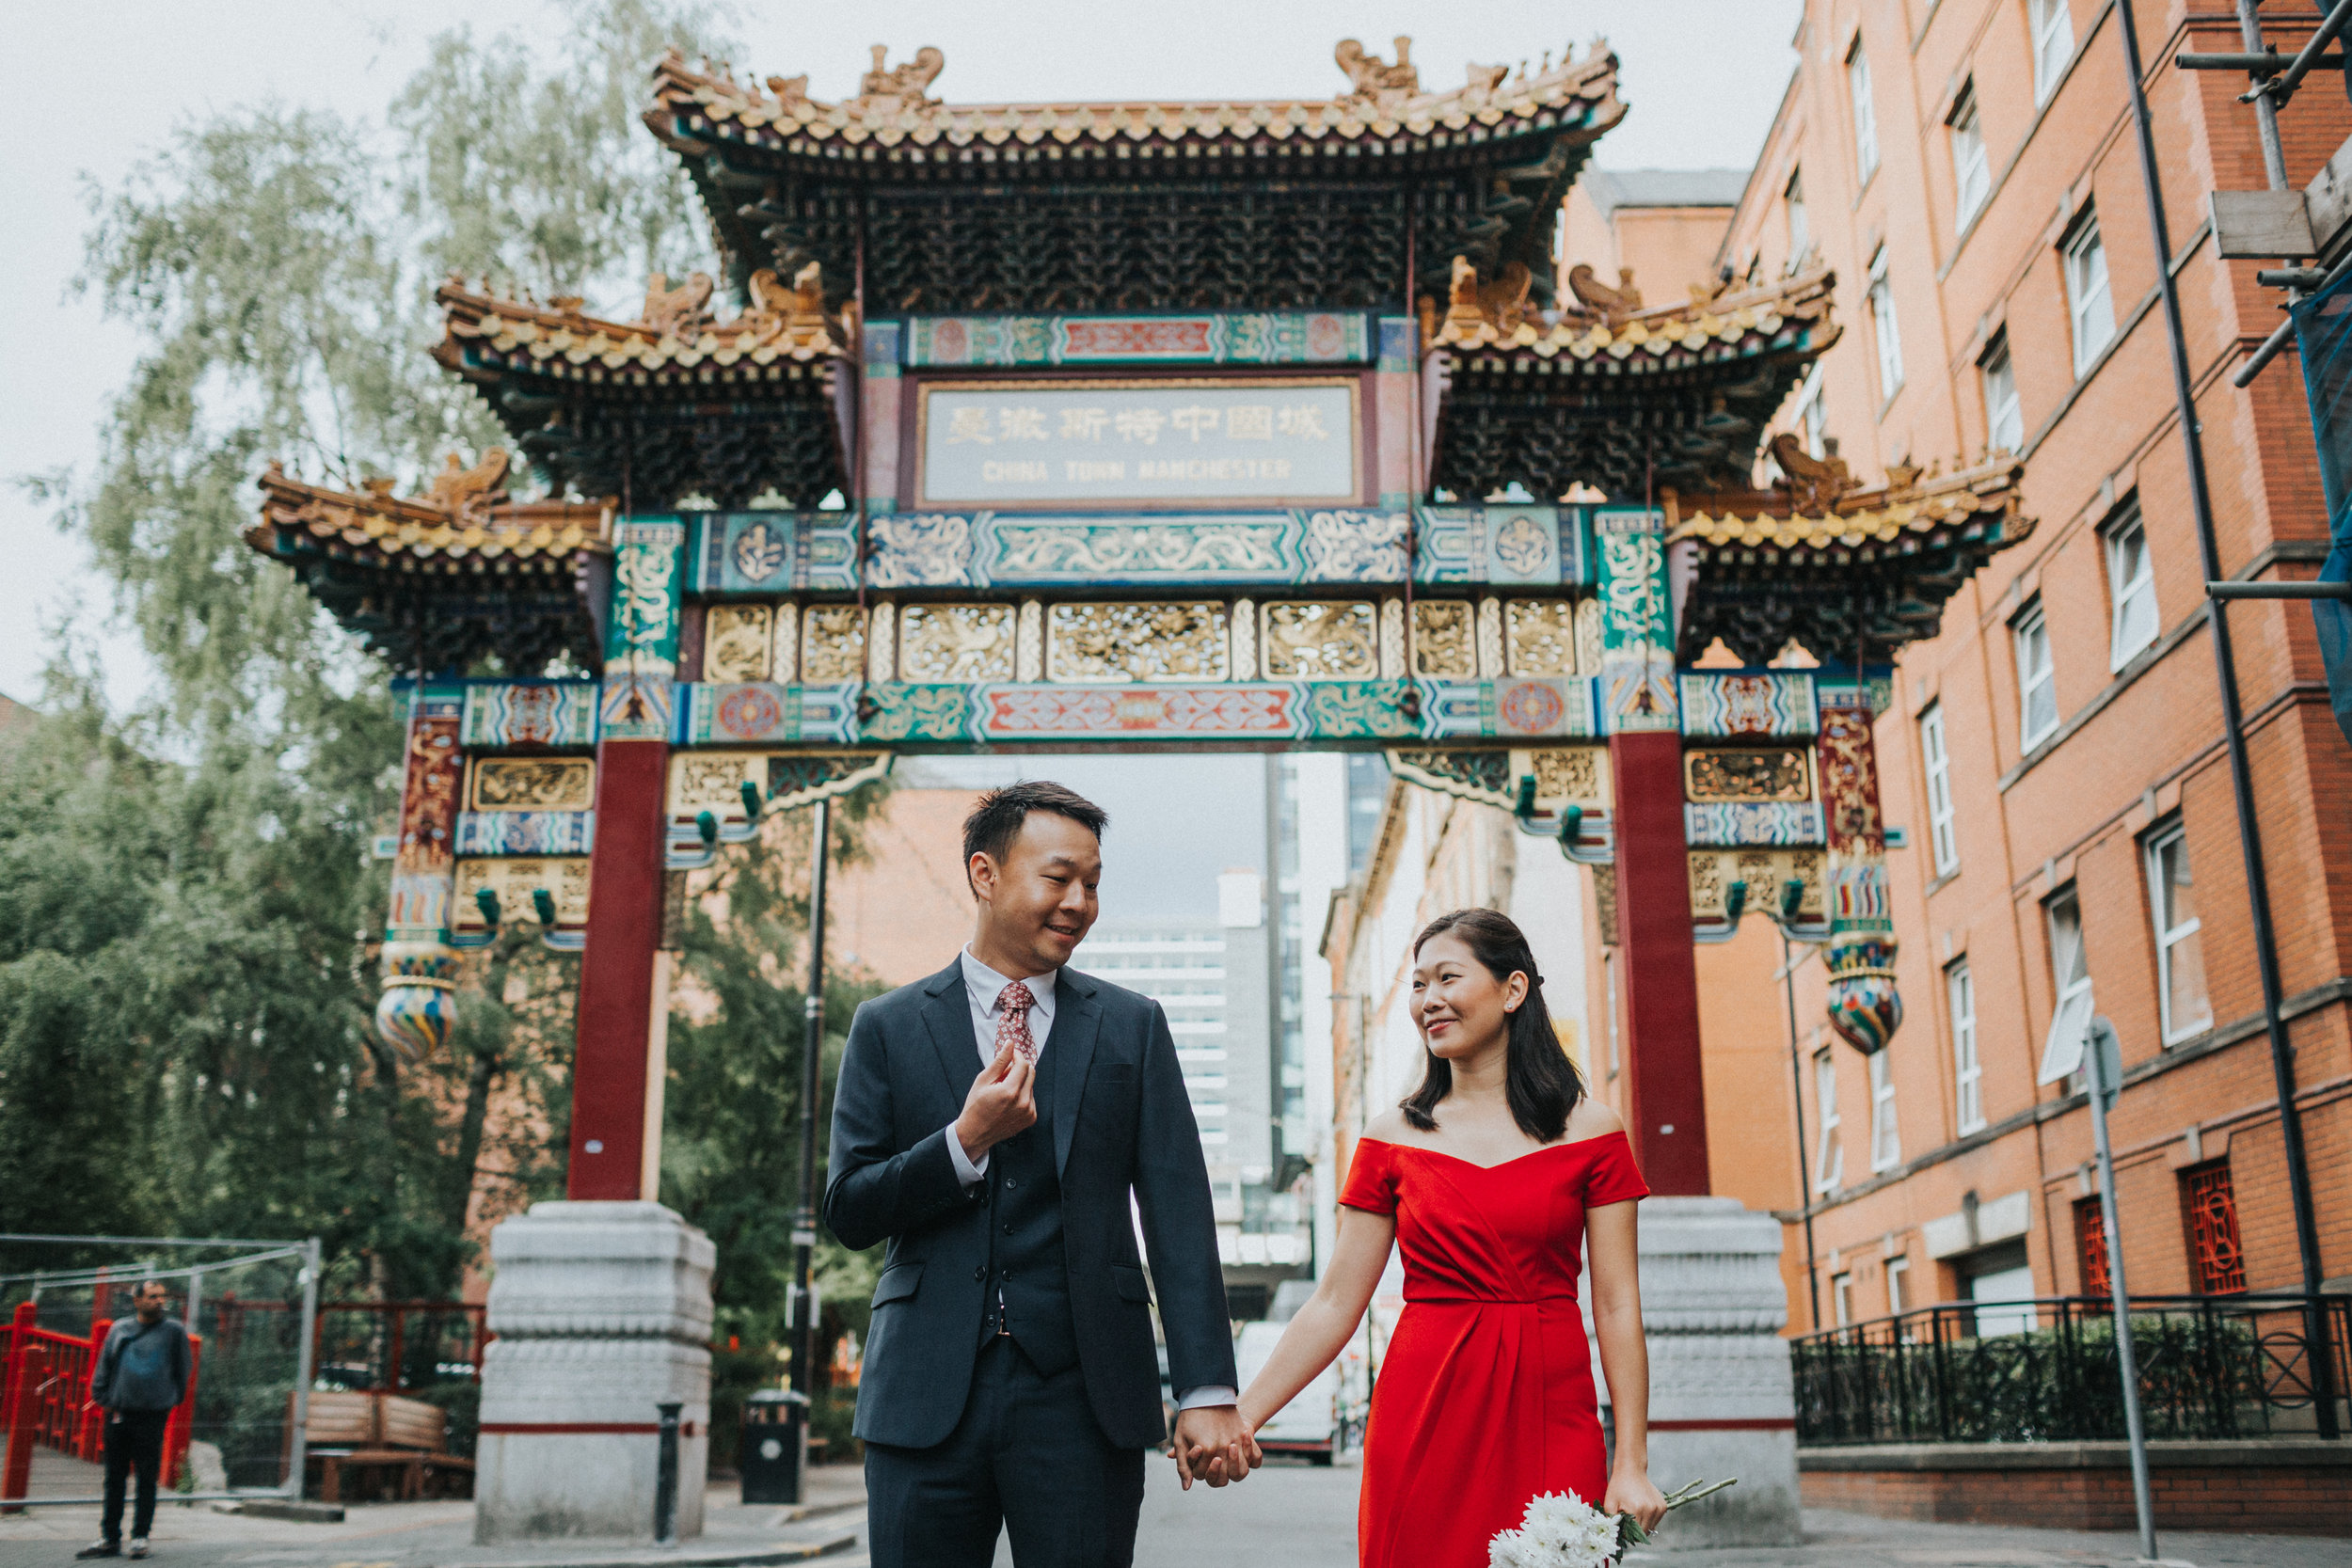 Couple stand under China Town Archway together.